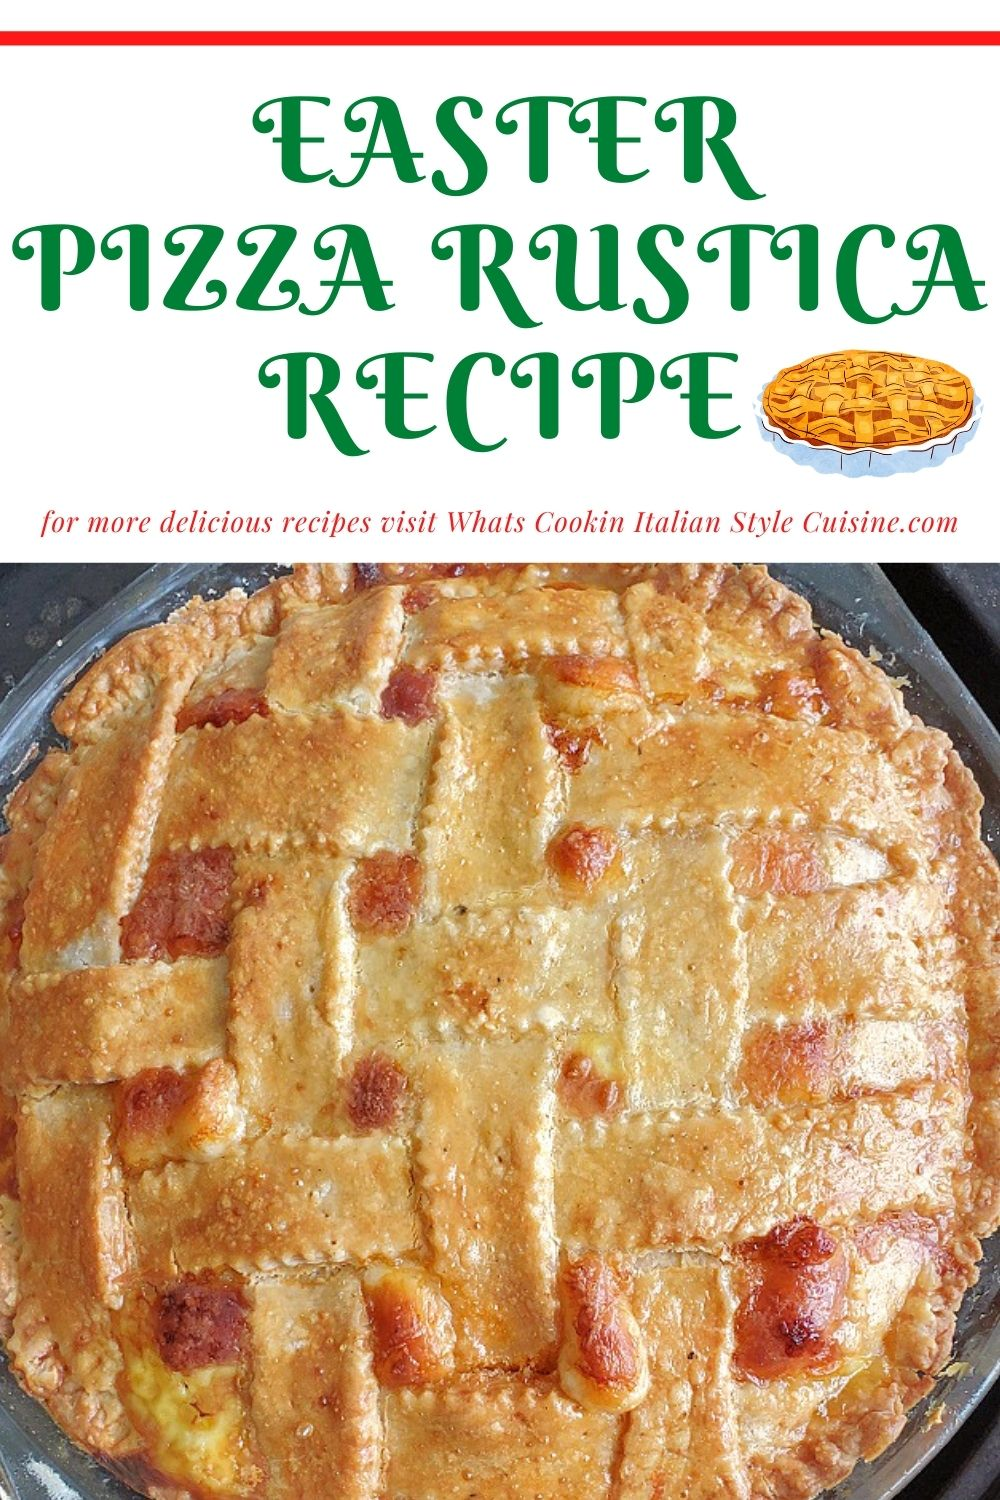 this is a pin for later on how to make an Easter Italian Meat pie stuffed with many deli meats like pepperoni, capicola and salami loaded with ricotta and lots of other cheese